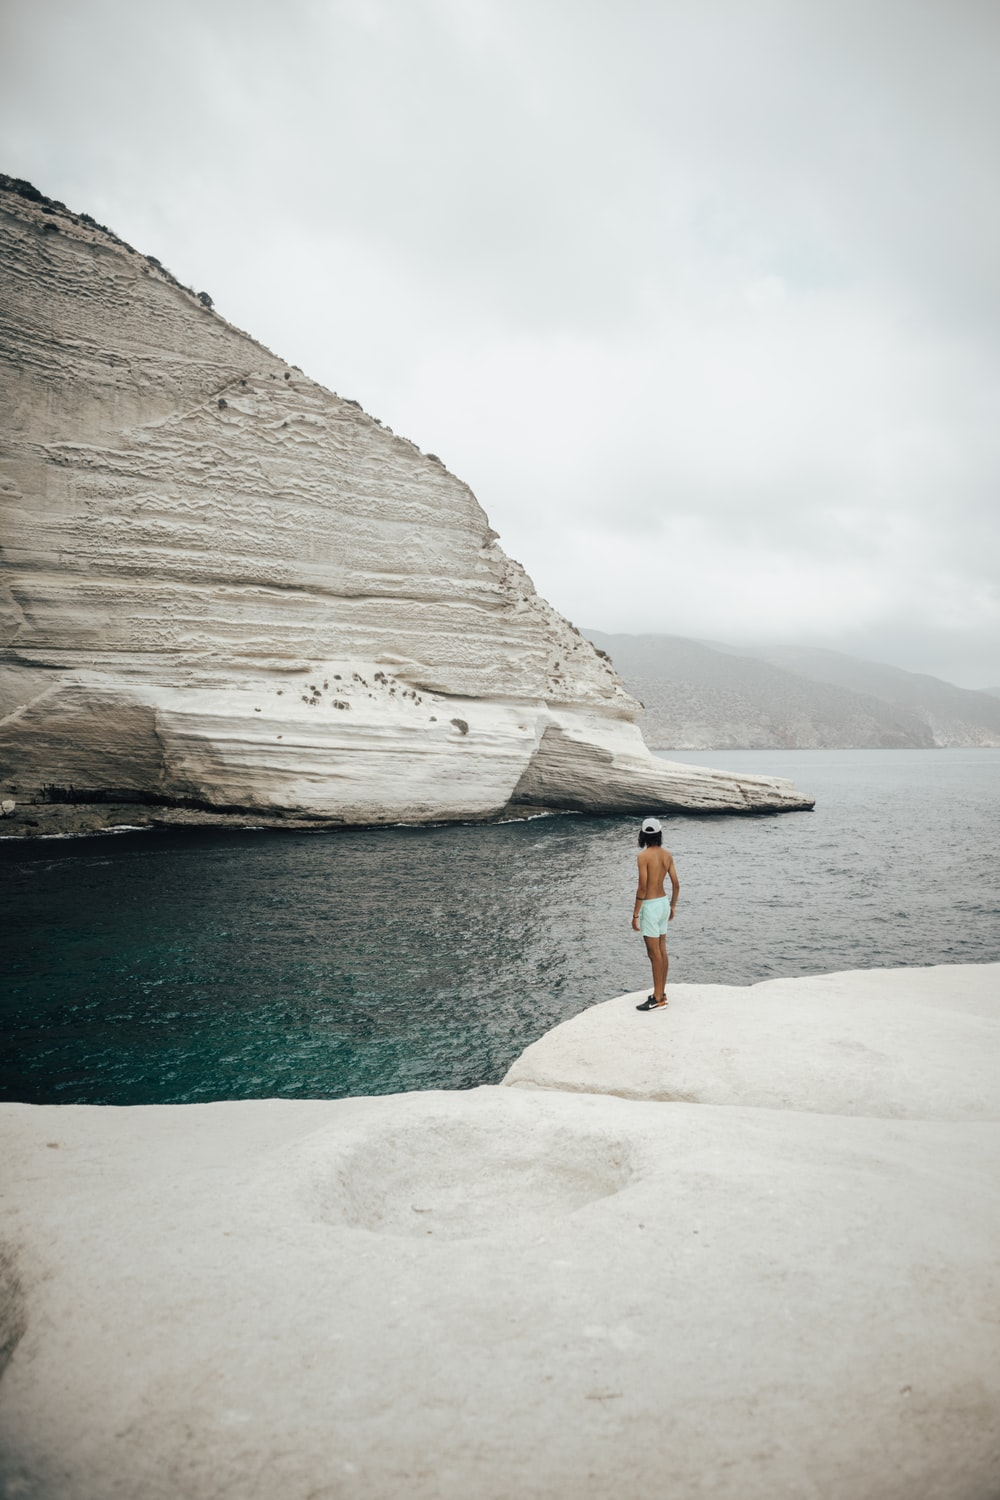 woman in blue denim shorts standing on rock formation near body of water during daytime